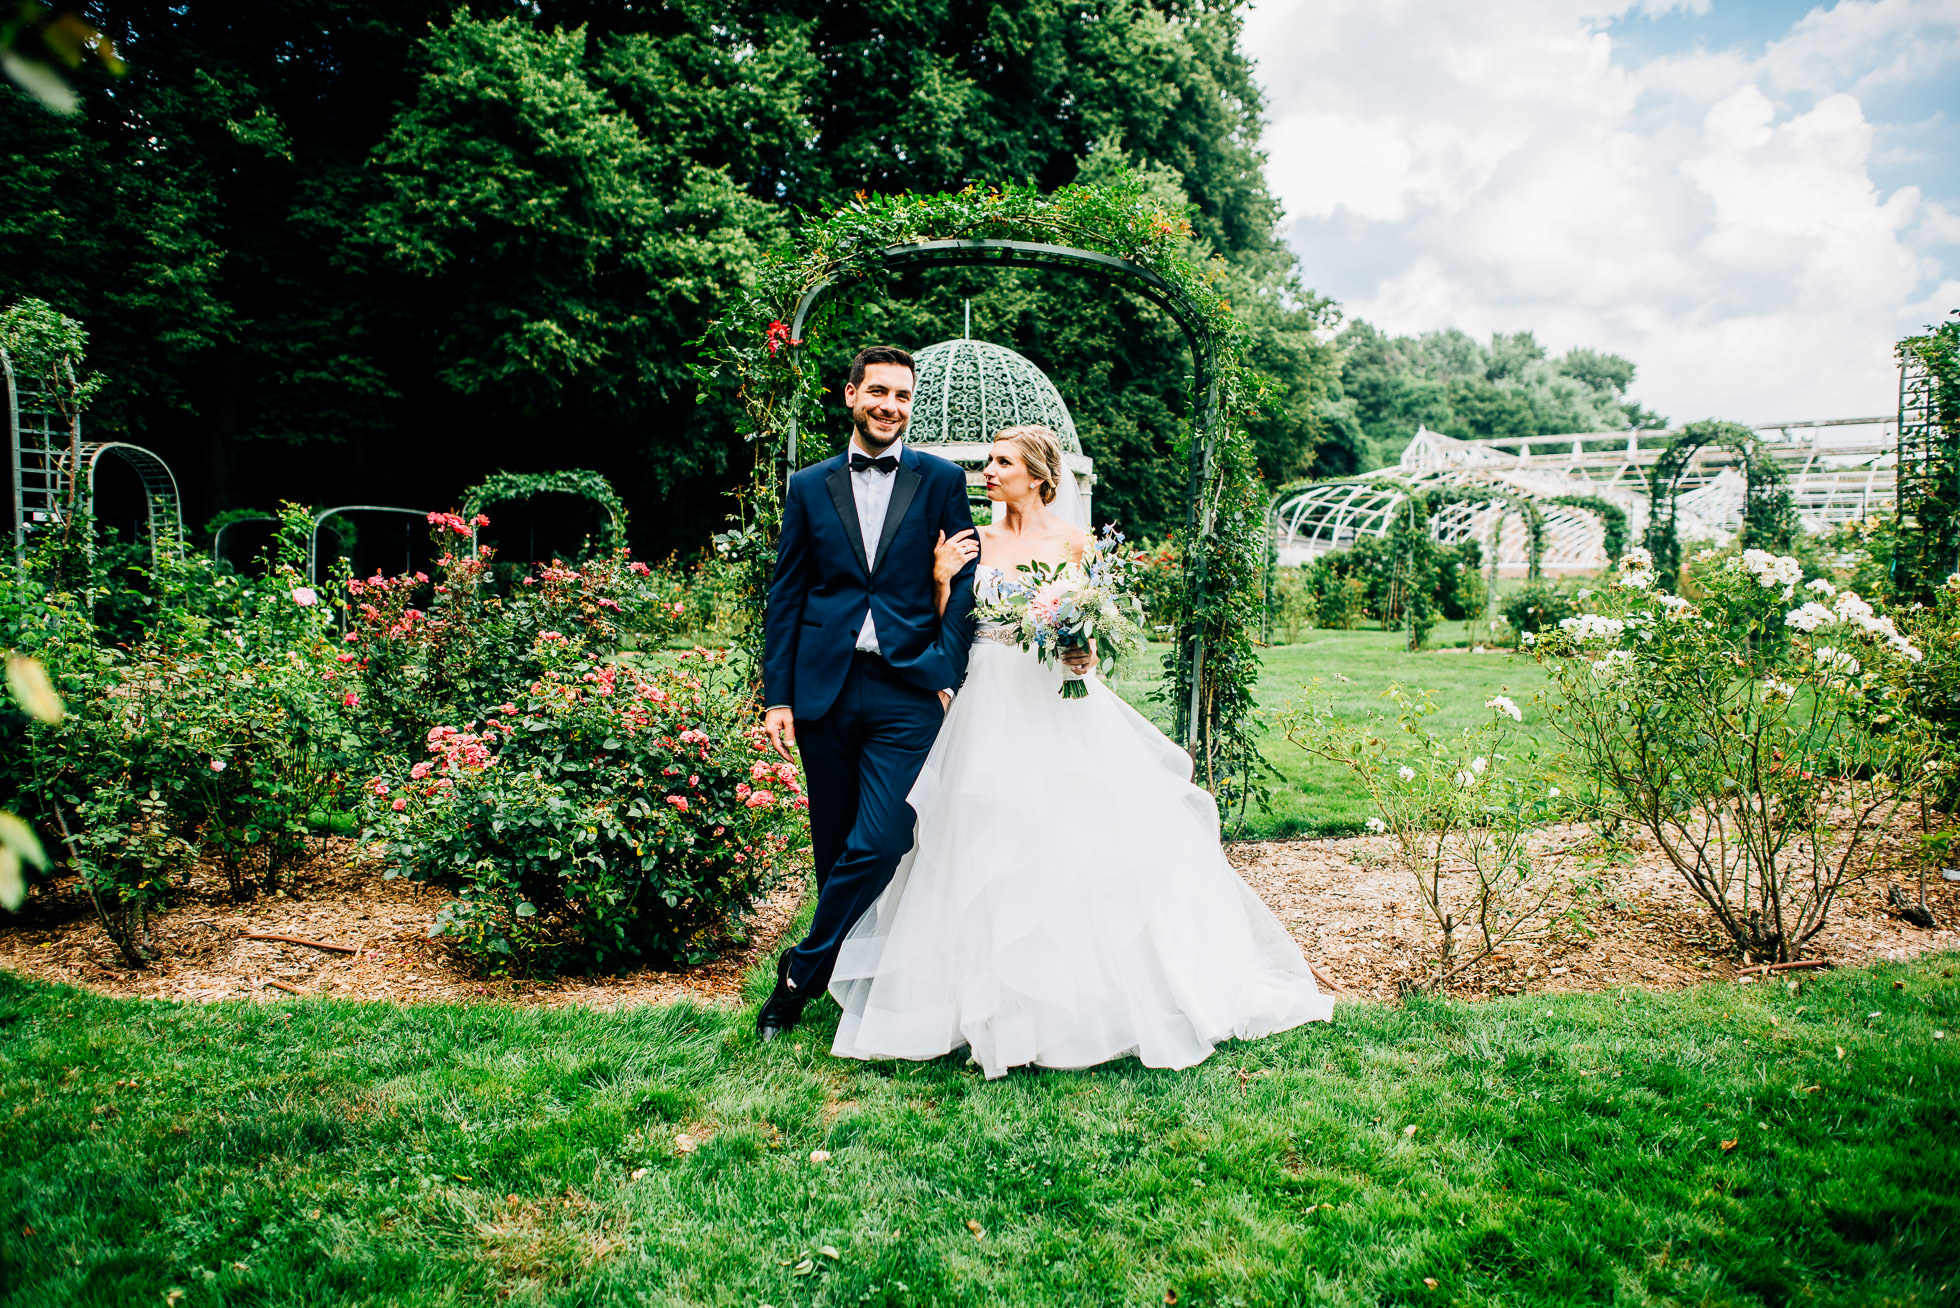 bride & groom portraits at lyndhurst castle rose garden photographed by traverse the tides-4